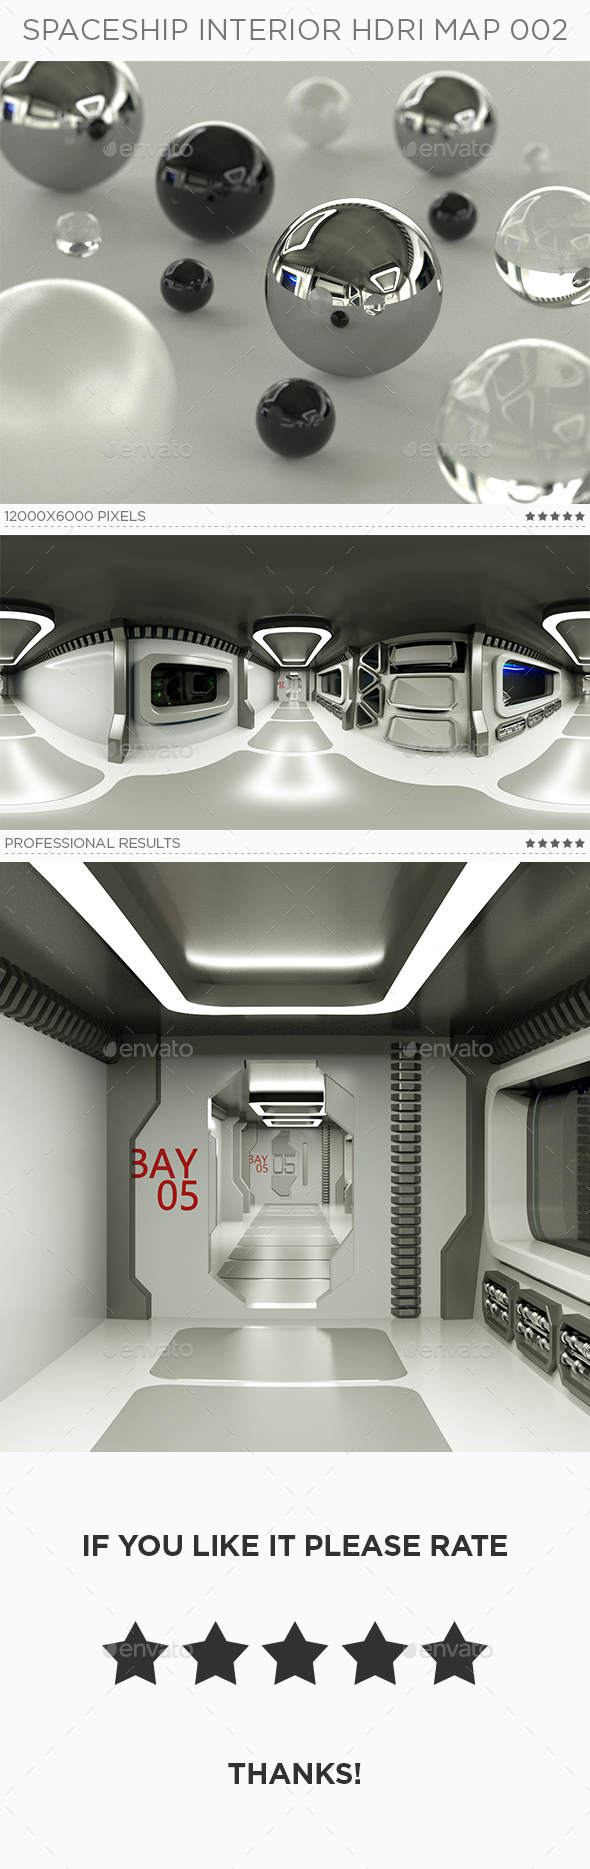 Spaceship Interior HDRi Map 002 - 3DOcean Item for Sale